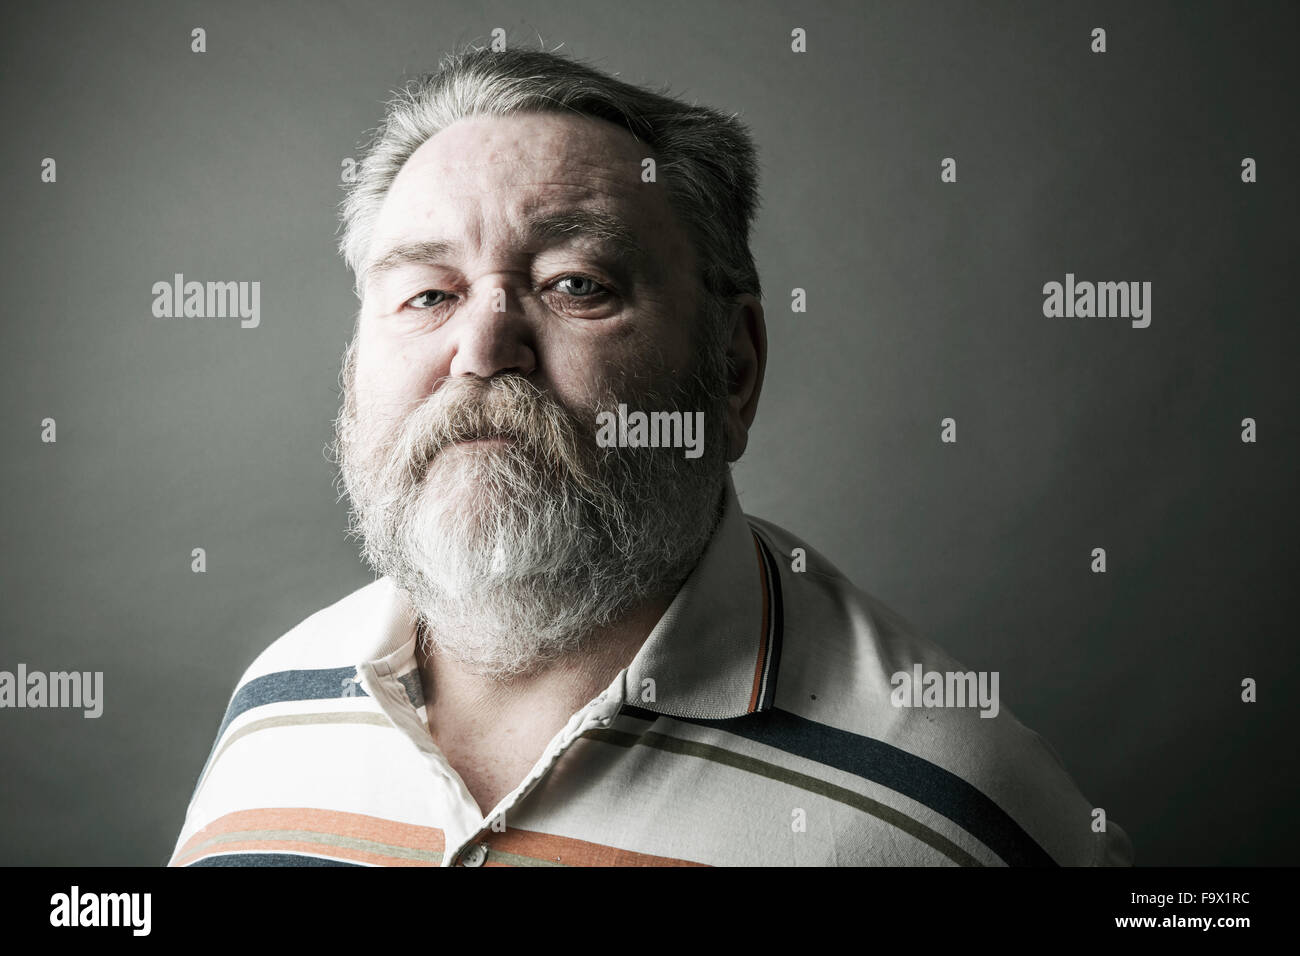 Portrait of senior man with full beard Stock Photo